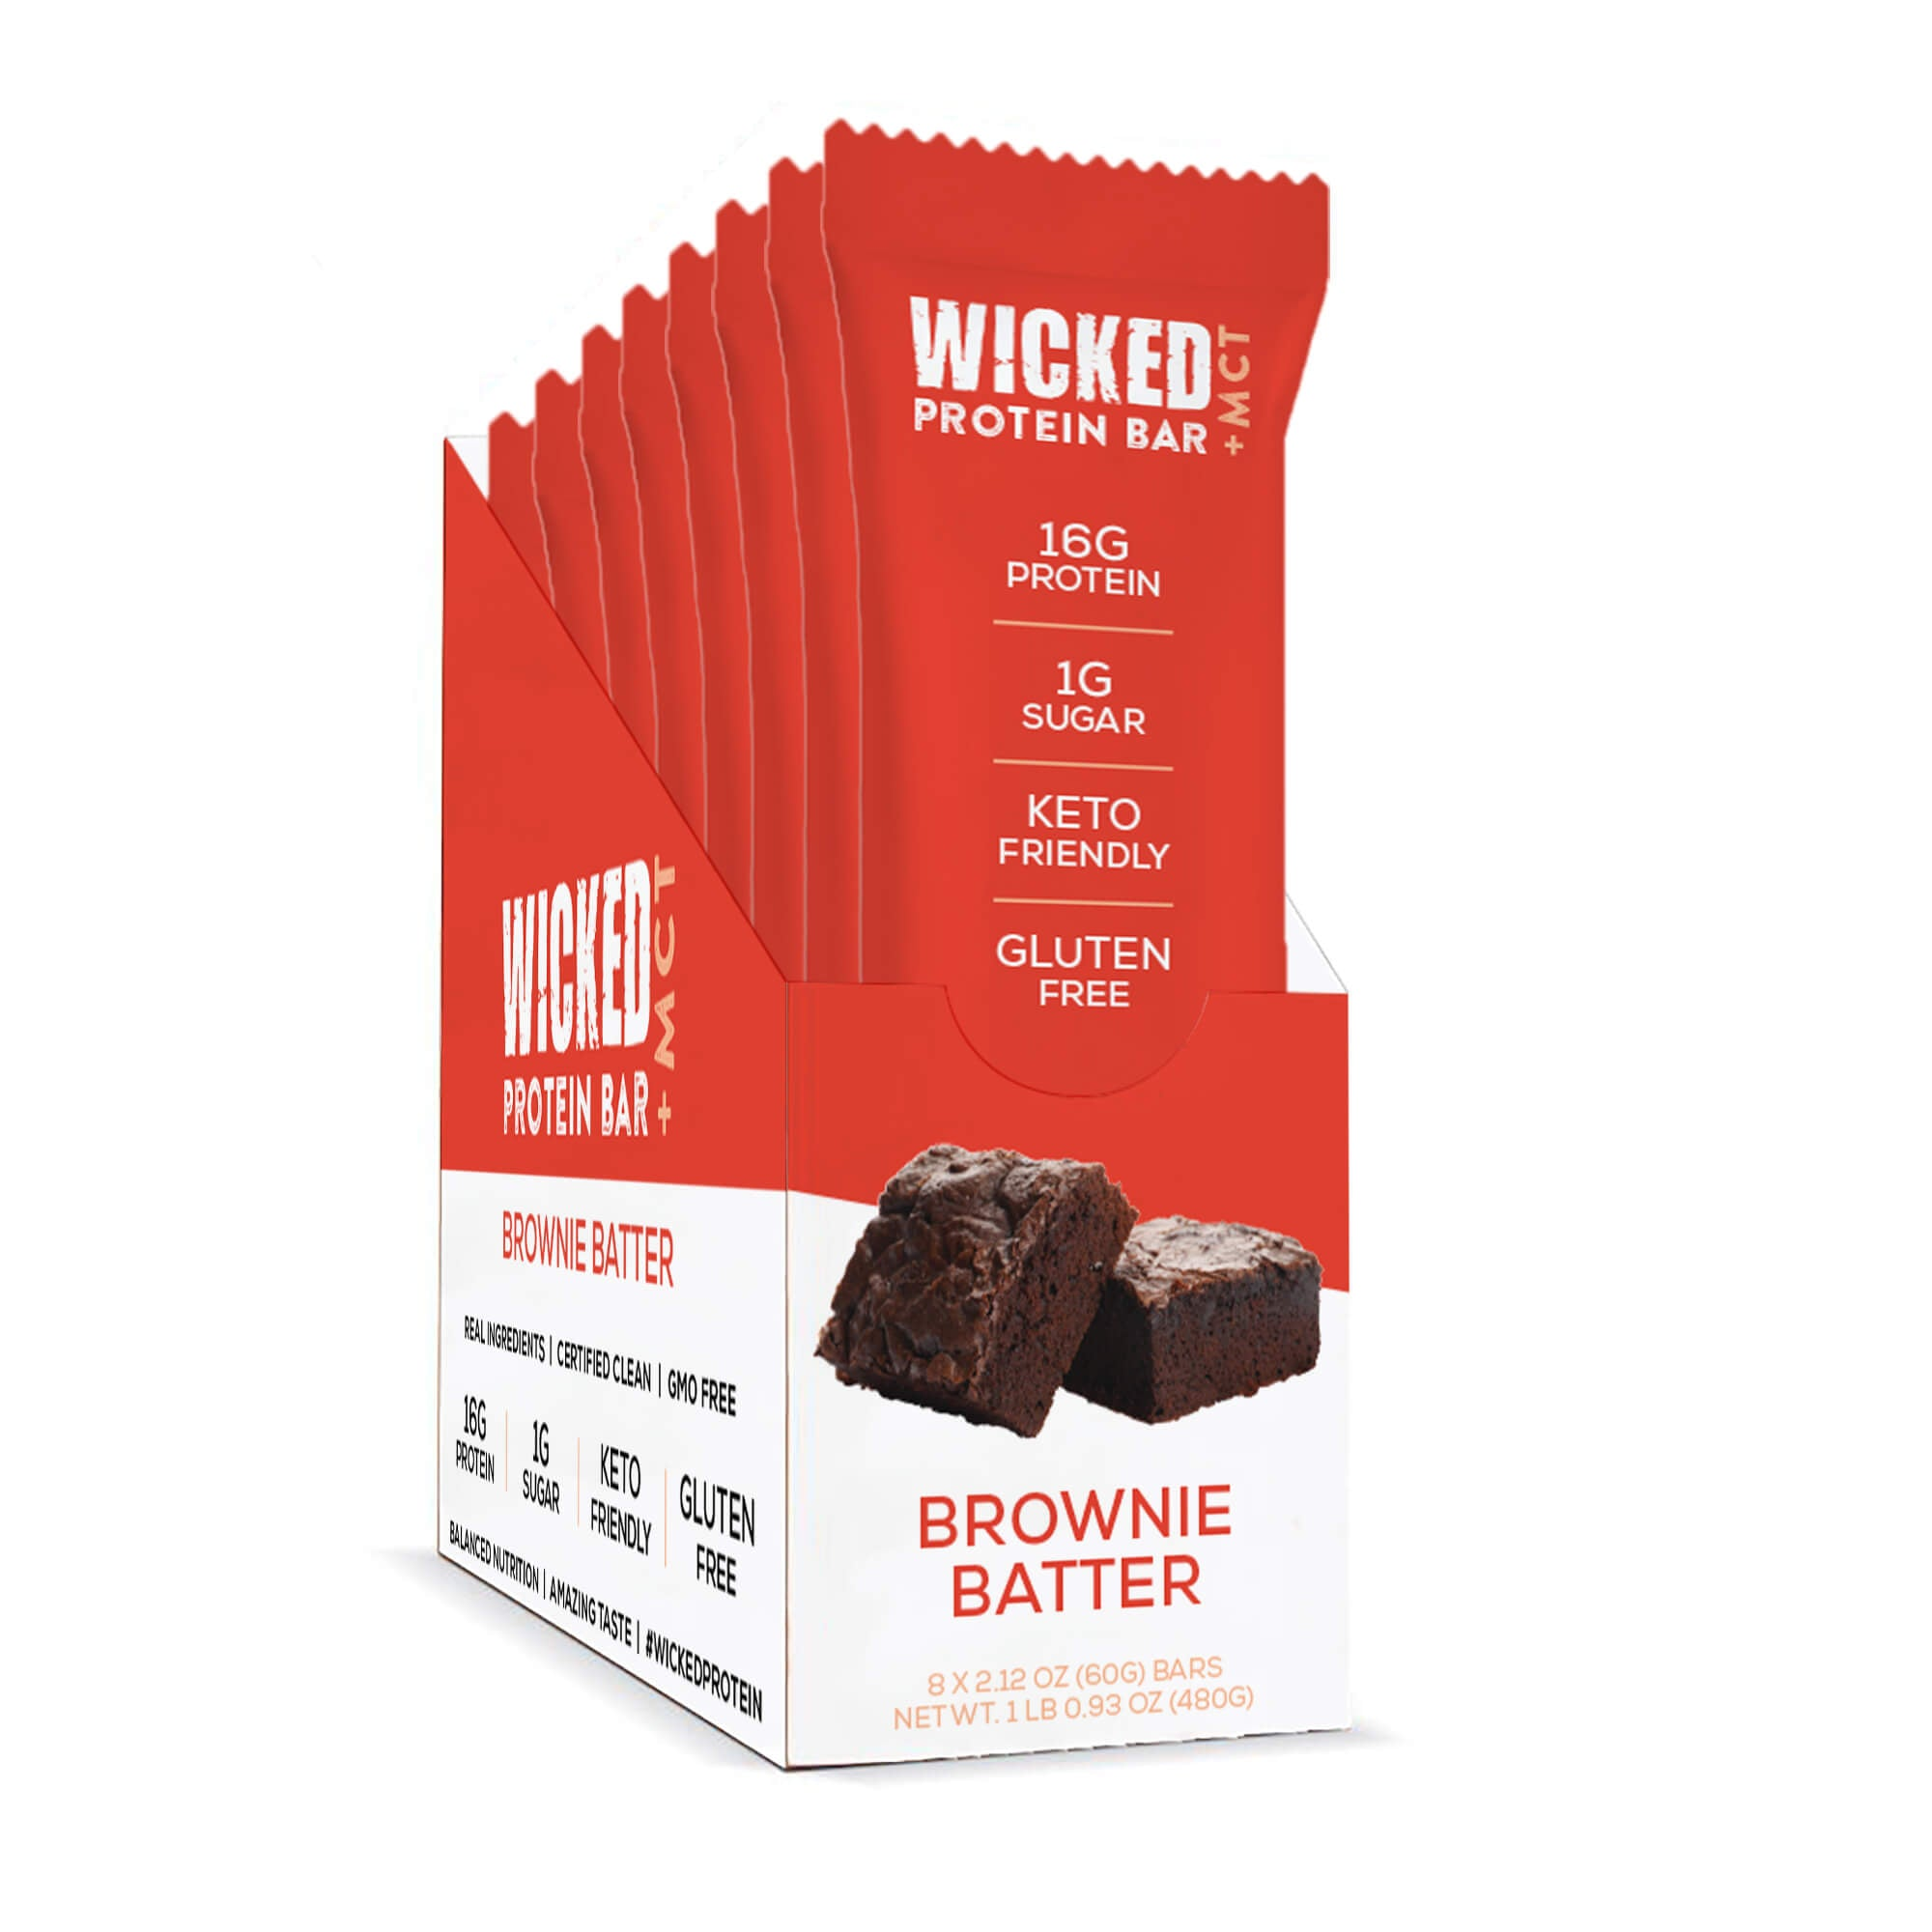 WICKED Refrigerated Brownie Batter Protein Bars (8 Bars/Box) - WICKED Protein Bars